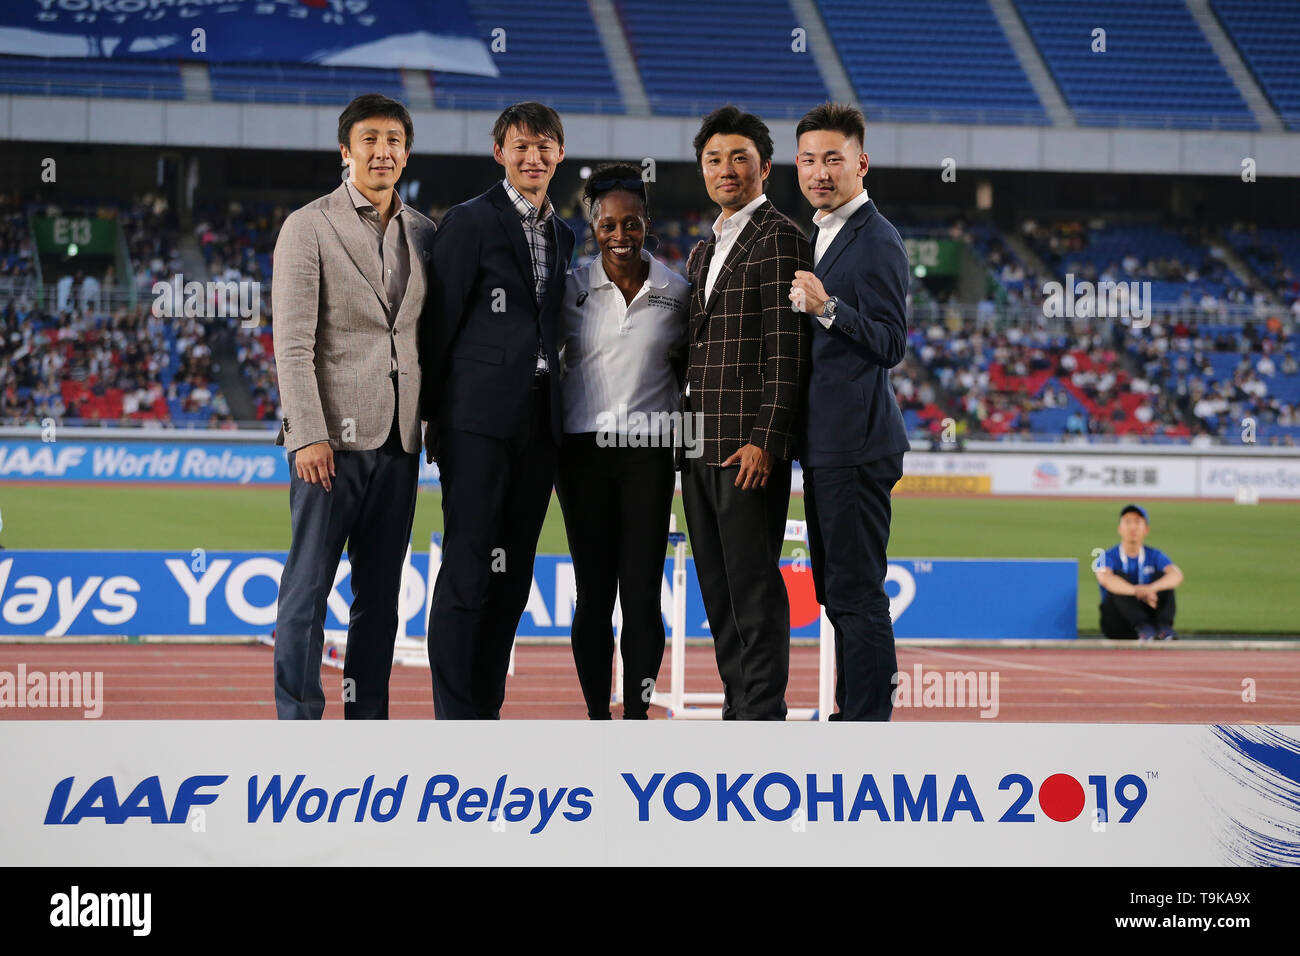 YOKOHAMA, JAPAN - MAY 10: the opening ceremony with Gail Devers during Day 1 of the 2019 IAAF World Relay Championships at the Nissan Stadium on Saturday May 11, 2019 in Yokohama, Japan. (Photo by Roger Sedres for the IAAF) - Stock Image